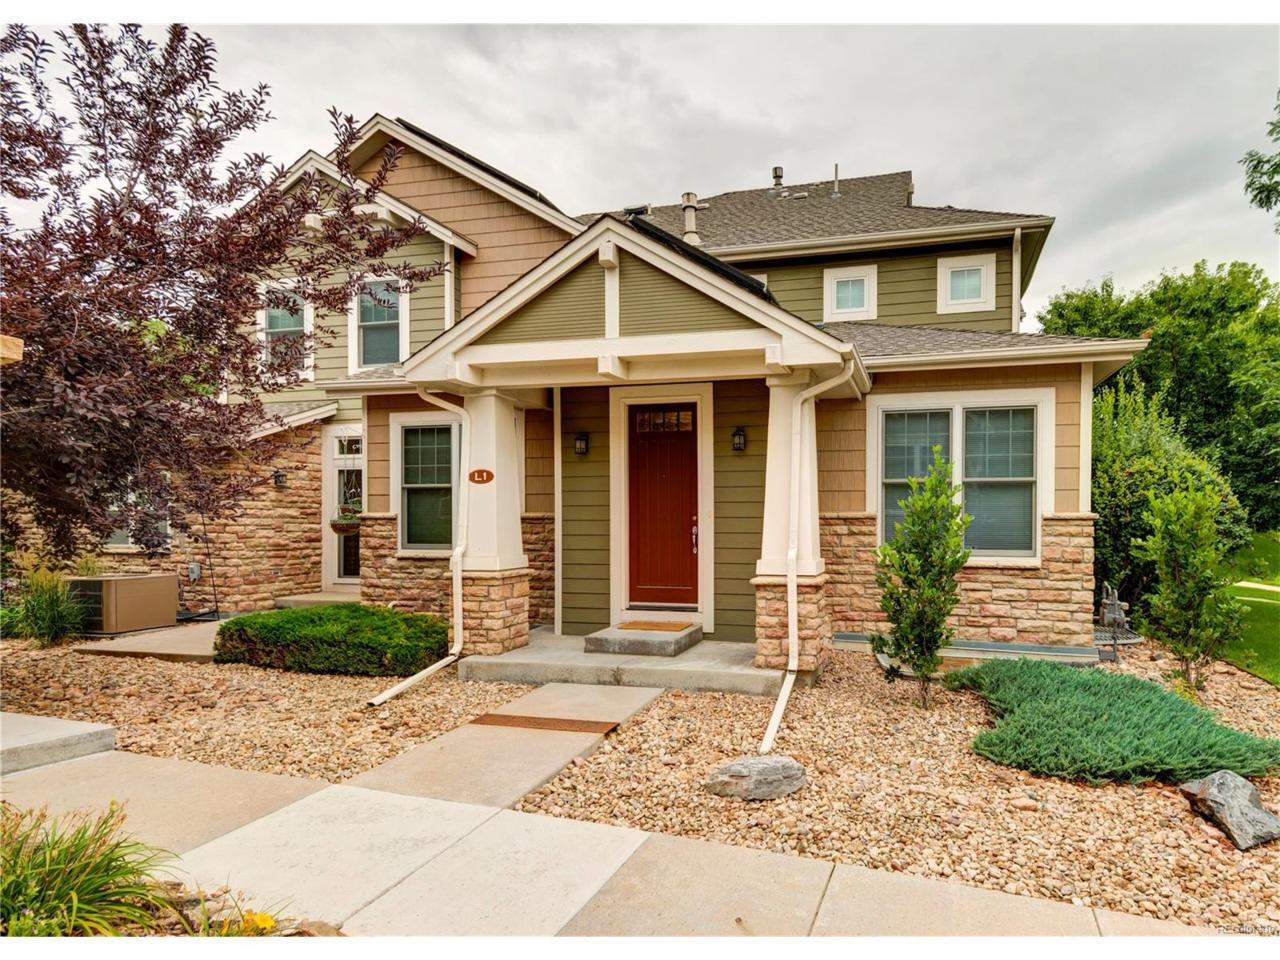 2550 Winding River Drive L, Broomfield, CO 80023 (MLS #4255783) :: 8z Real Estate